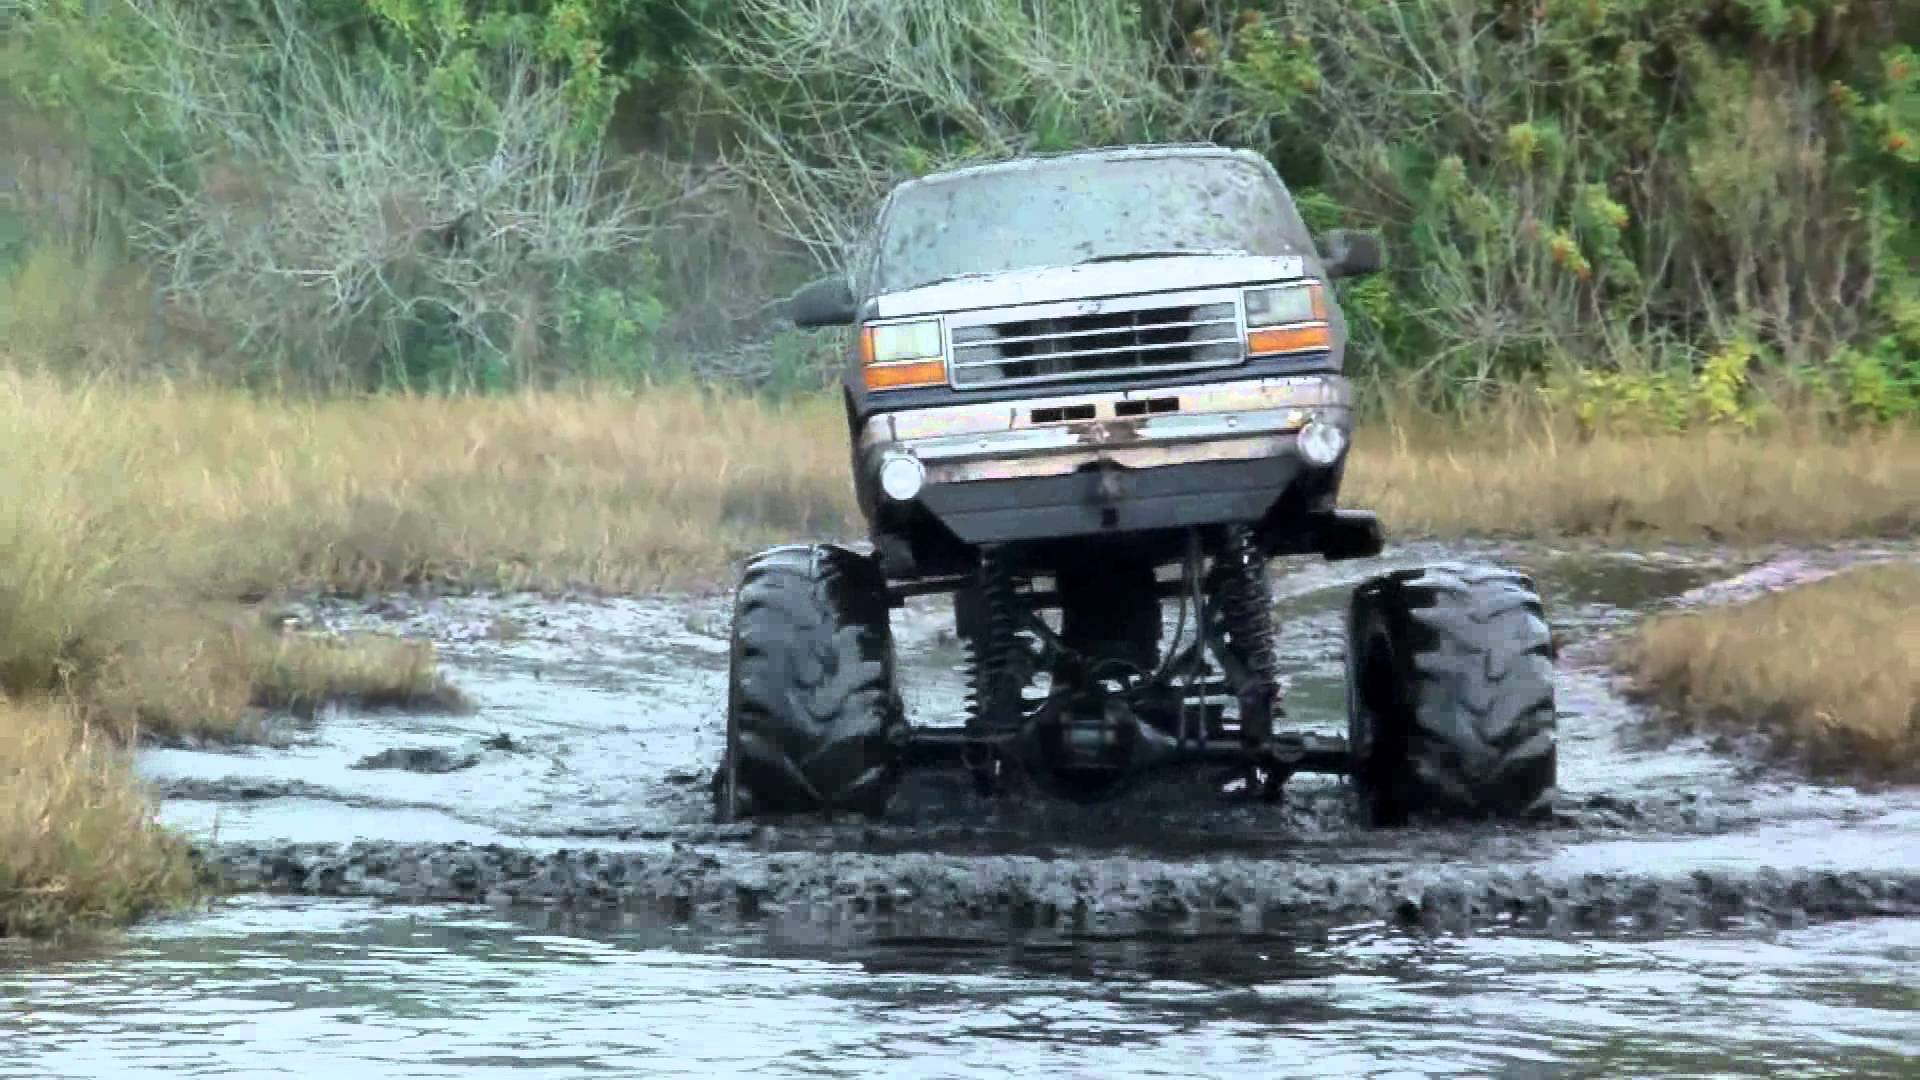 rc 4x4 mud trucks with Mud Bogging 4x4 Offroad Race Racing Monster Truck Race Racing Pickup Ford on Watch besides MUD BOGGING 4x4 offroad race racing monster Truck race racing pickup ford together with Watch also Some Useful Tips When You Are Planning To Buy Truck Accessories together with Watch.